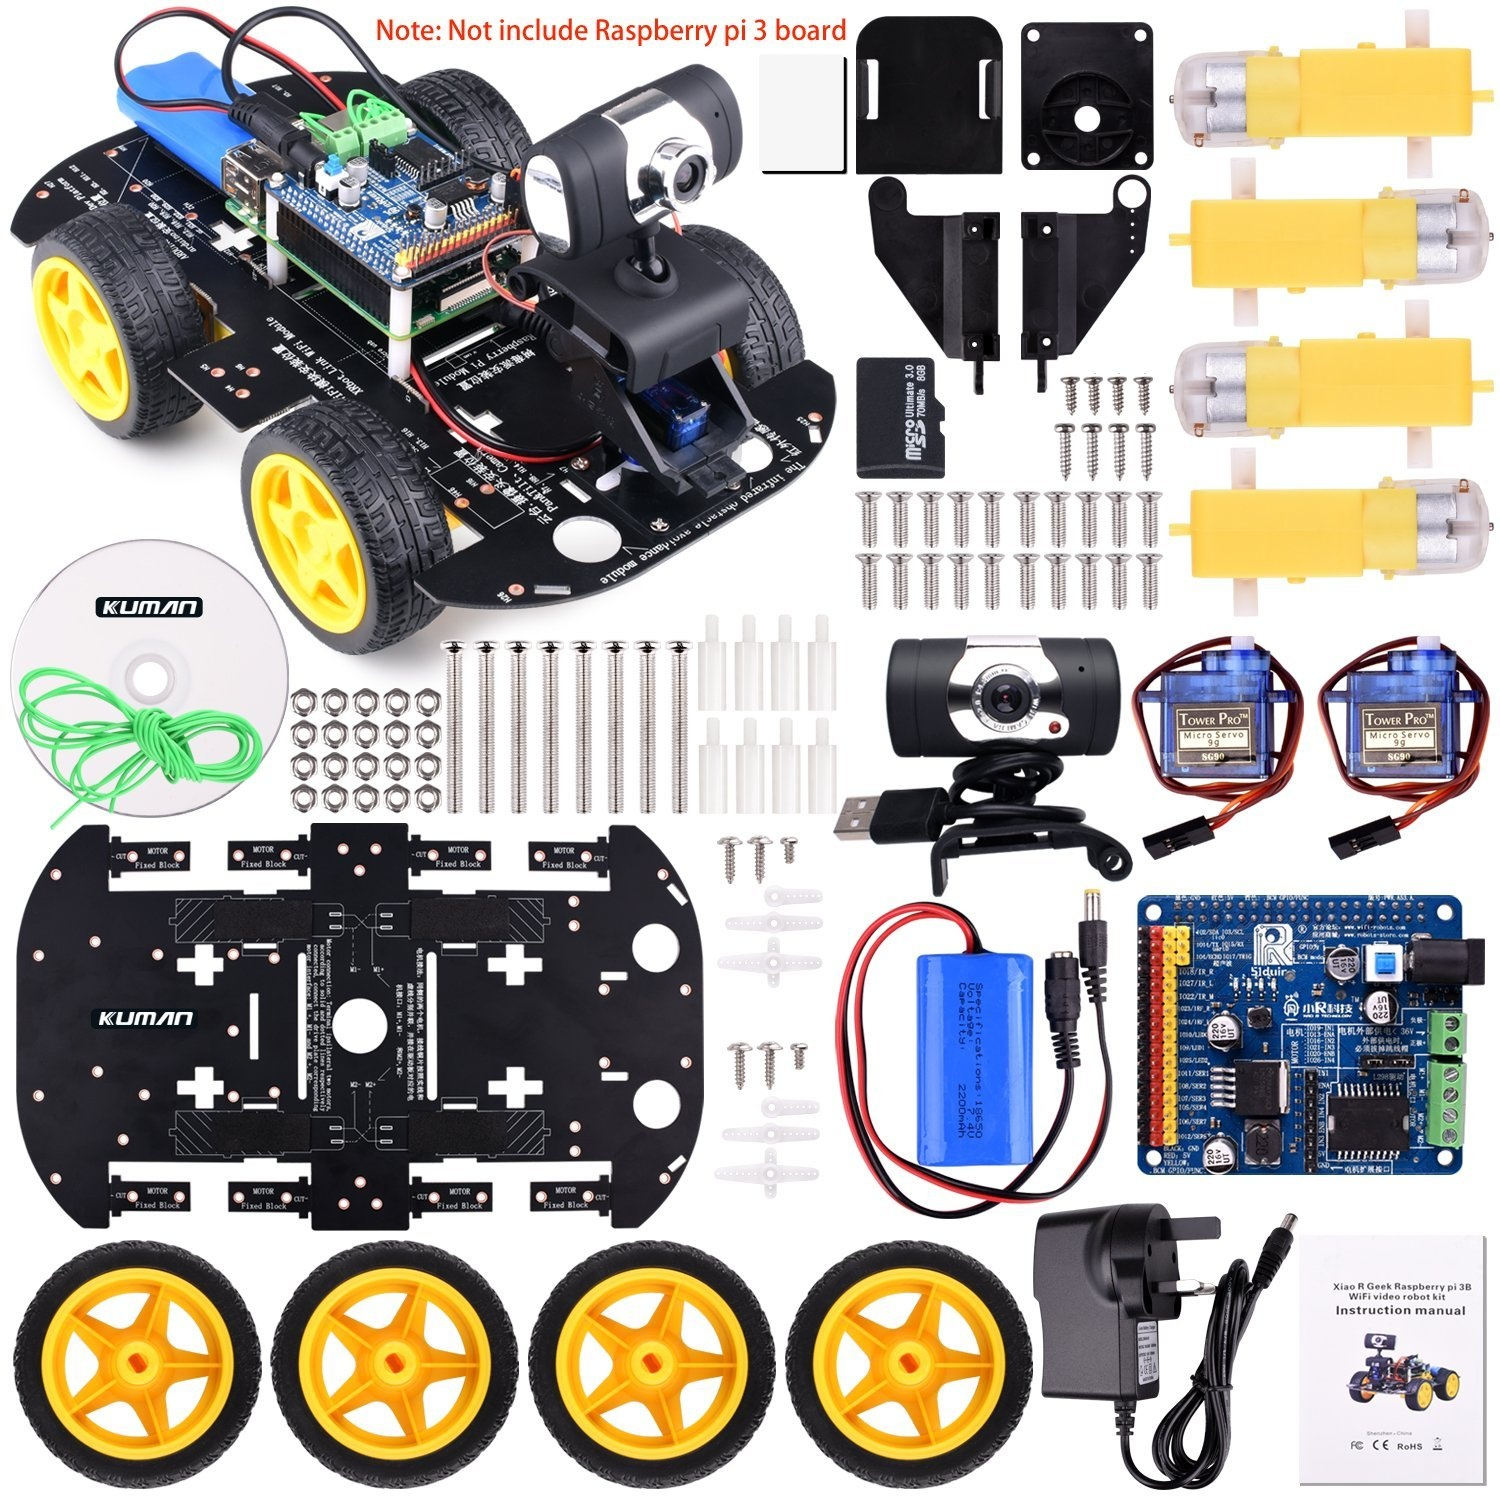 Kuman Professional WIFI Smart Robot Model Car kit Video Camera for  Raspberry Pi 3 RC Remote Control Robotics Electronic Toys Game Controlled  by PC